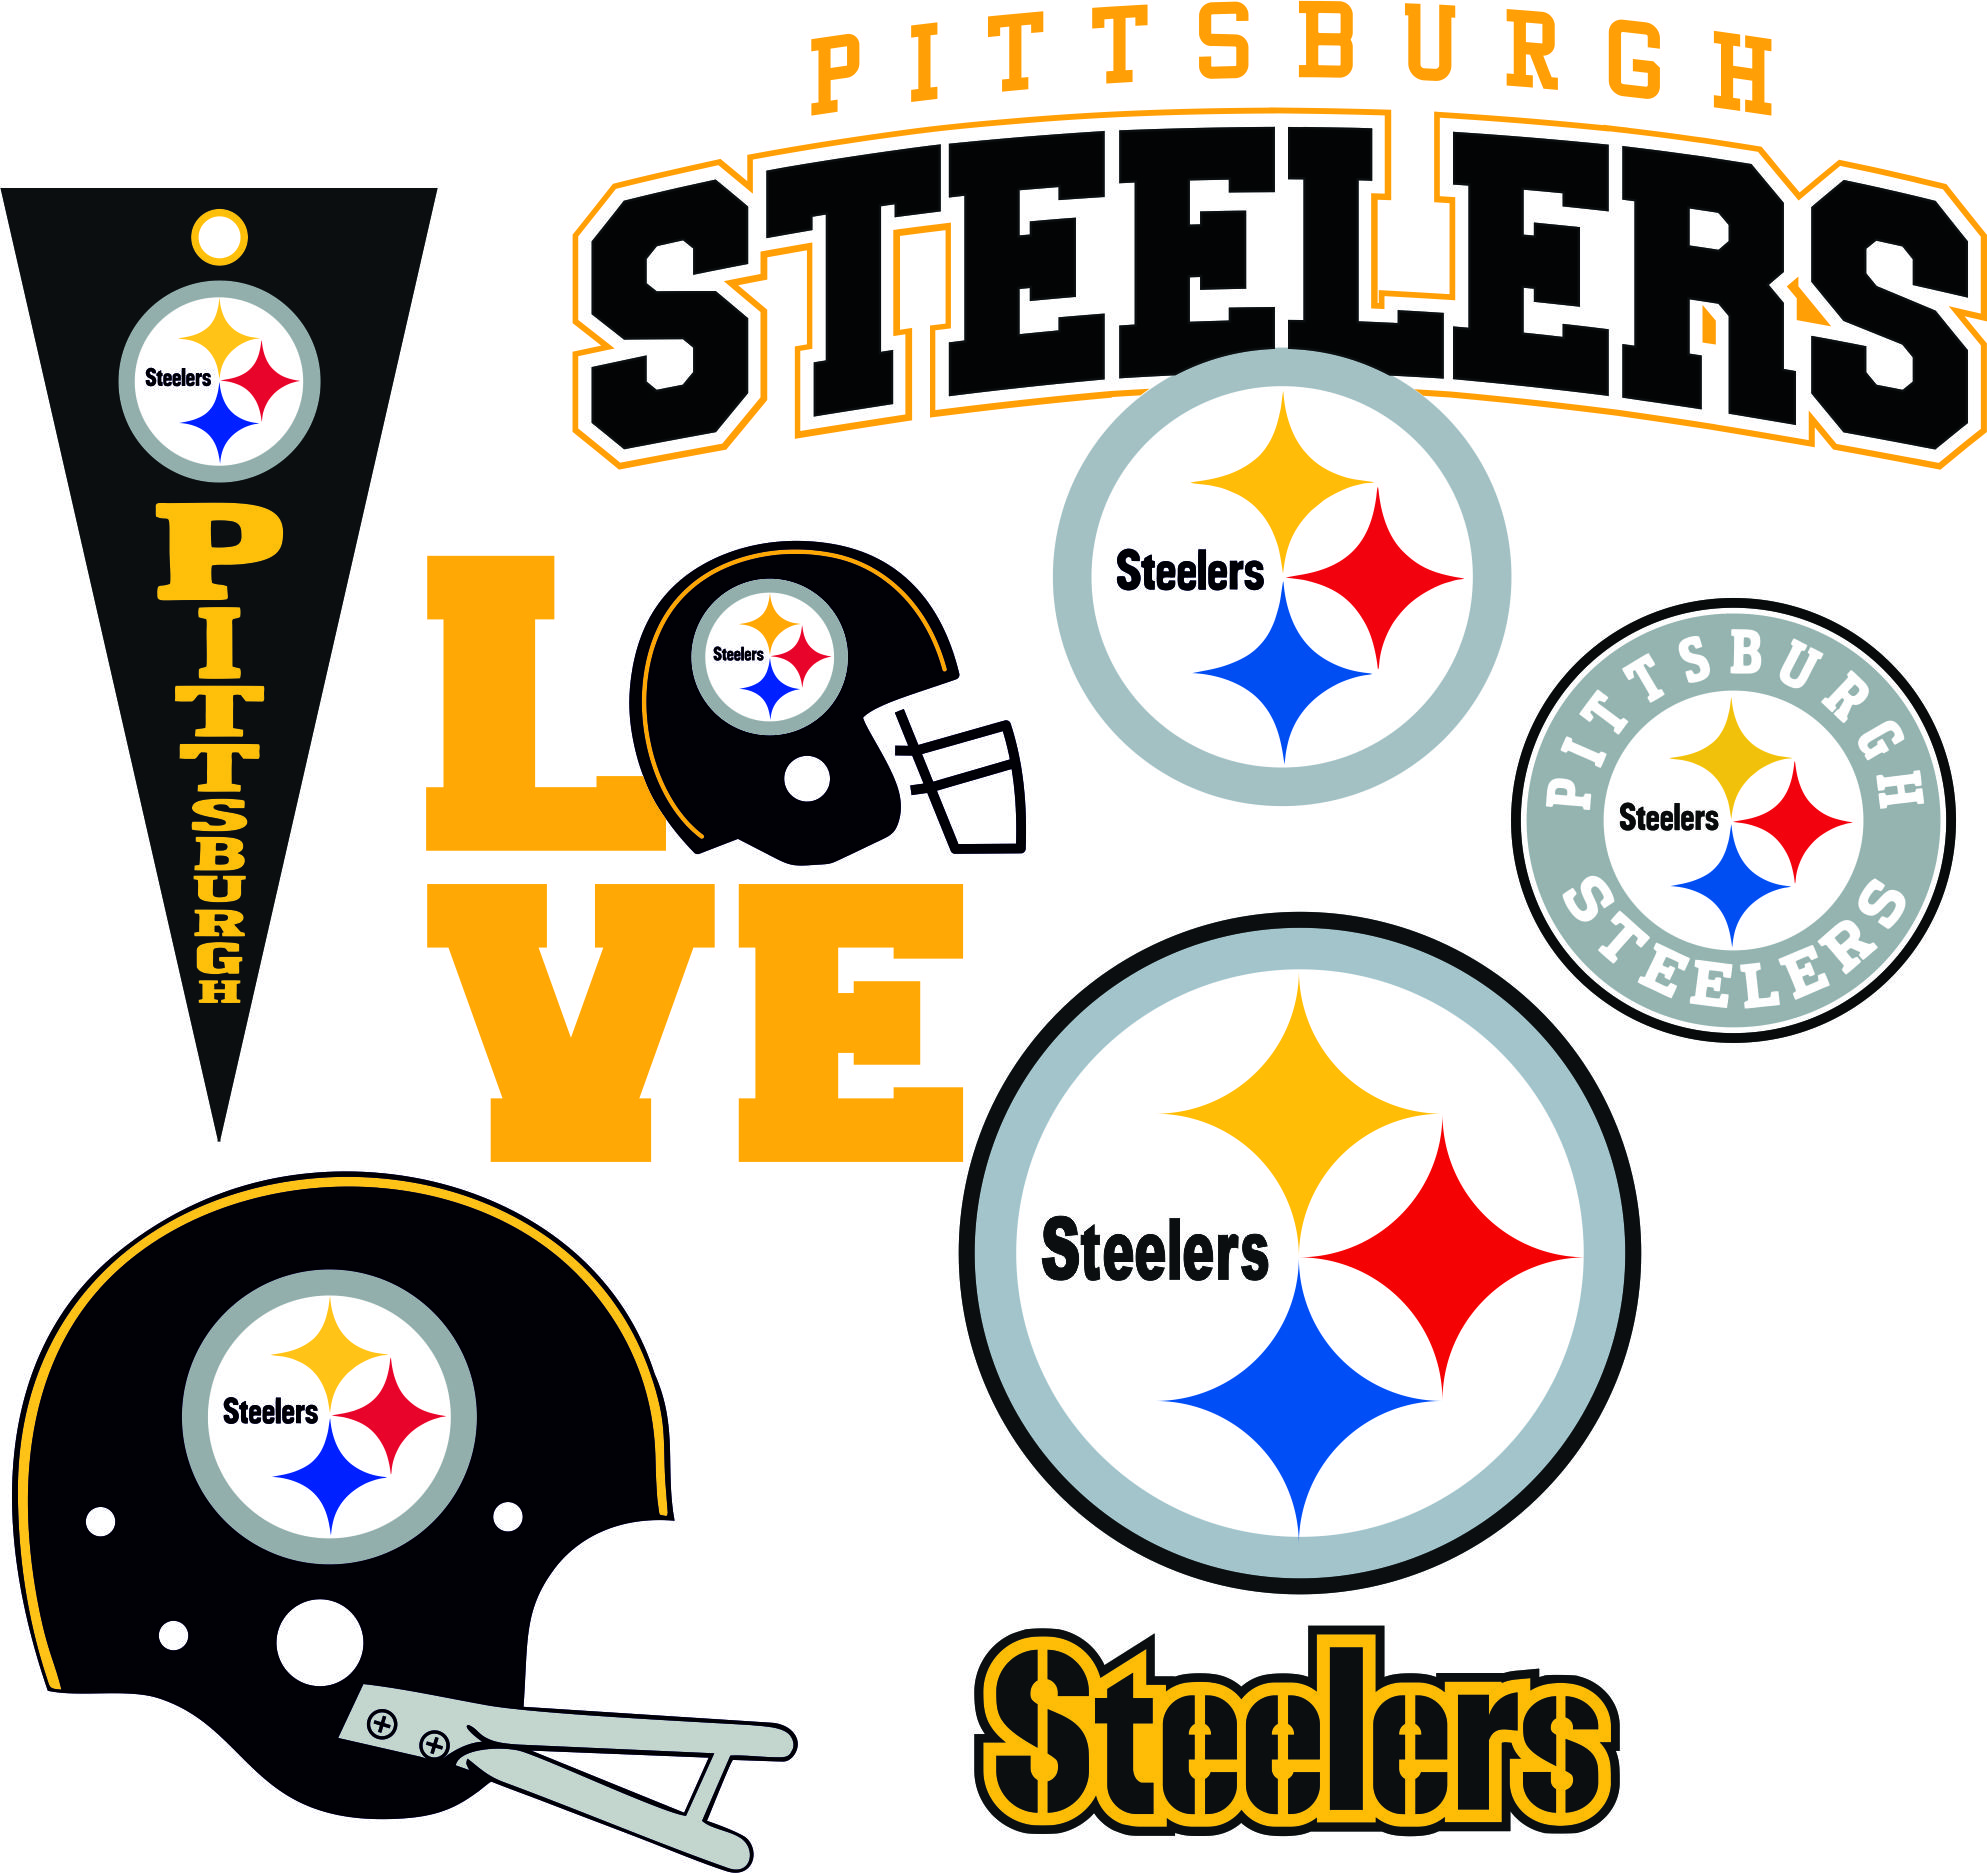 Pittsburgh Steelers Svg Dxf Eps Logo Silhouette Studio Transfer Iron On Cut File Cameo Cricut Iron On Decal Vinyl Decal Layered Vector